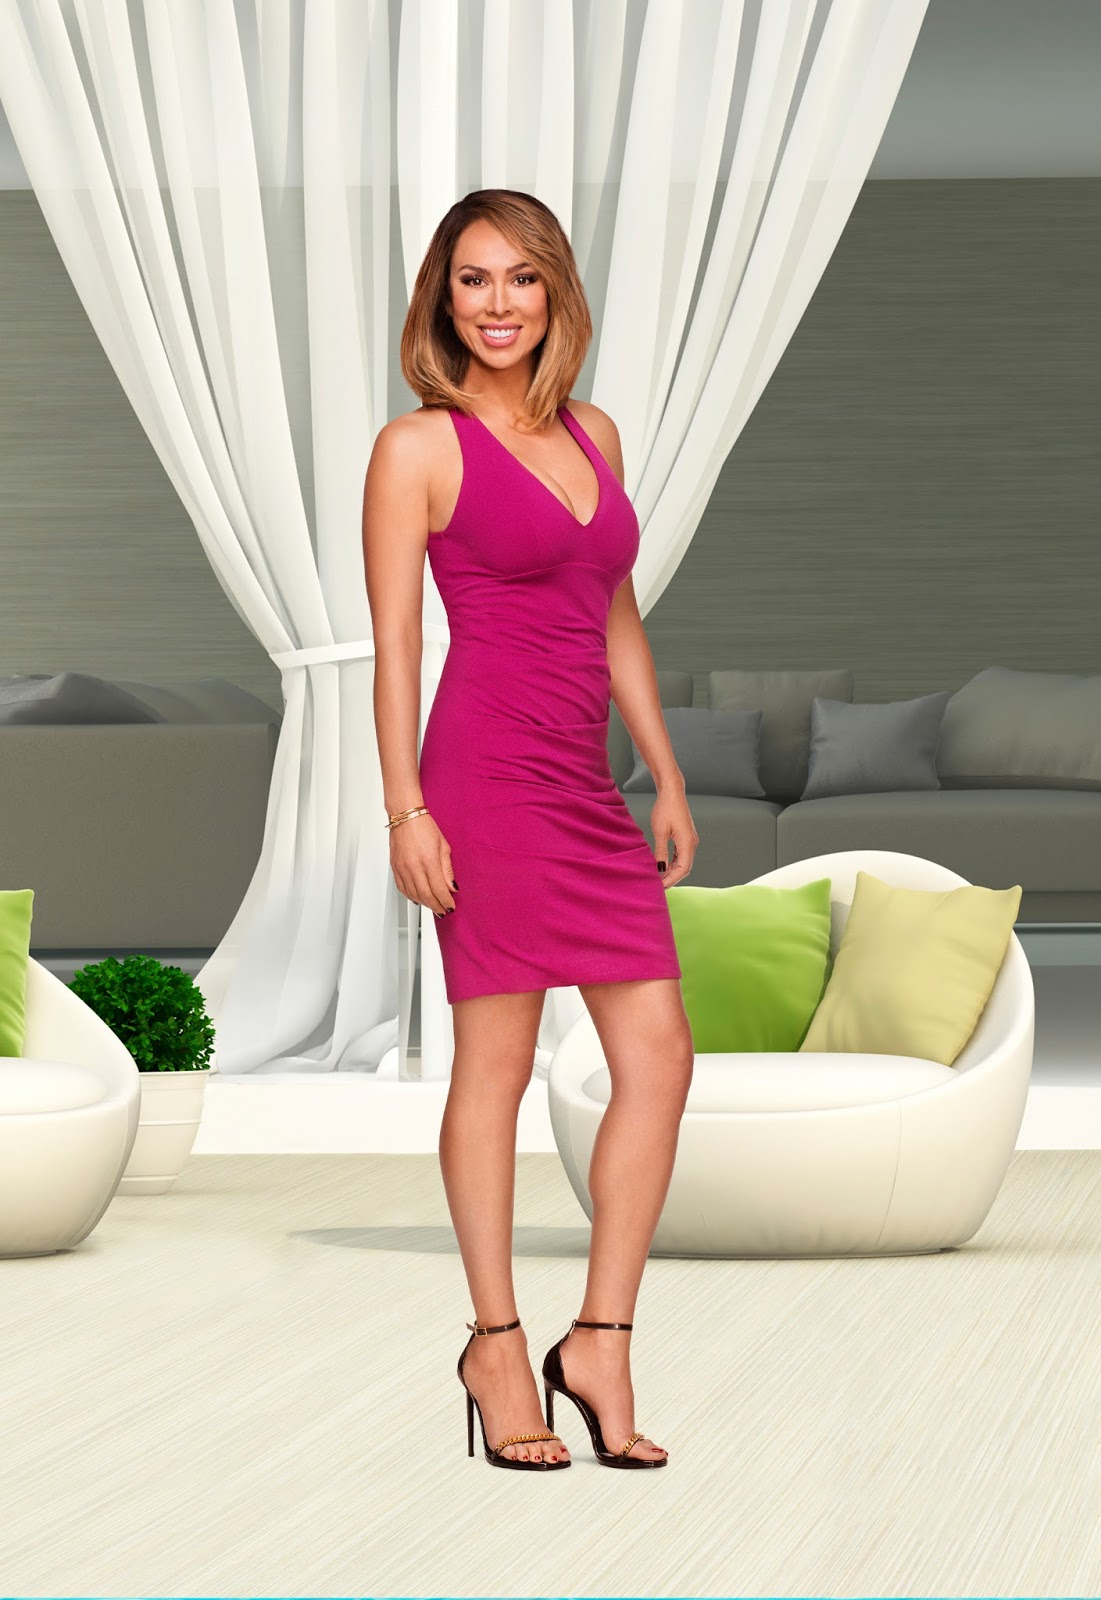 Irealhousewives The 411 On American International Real